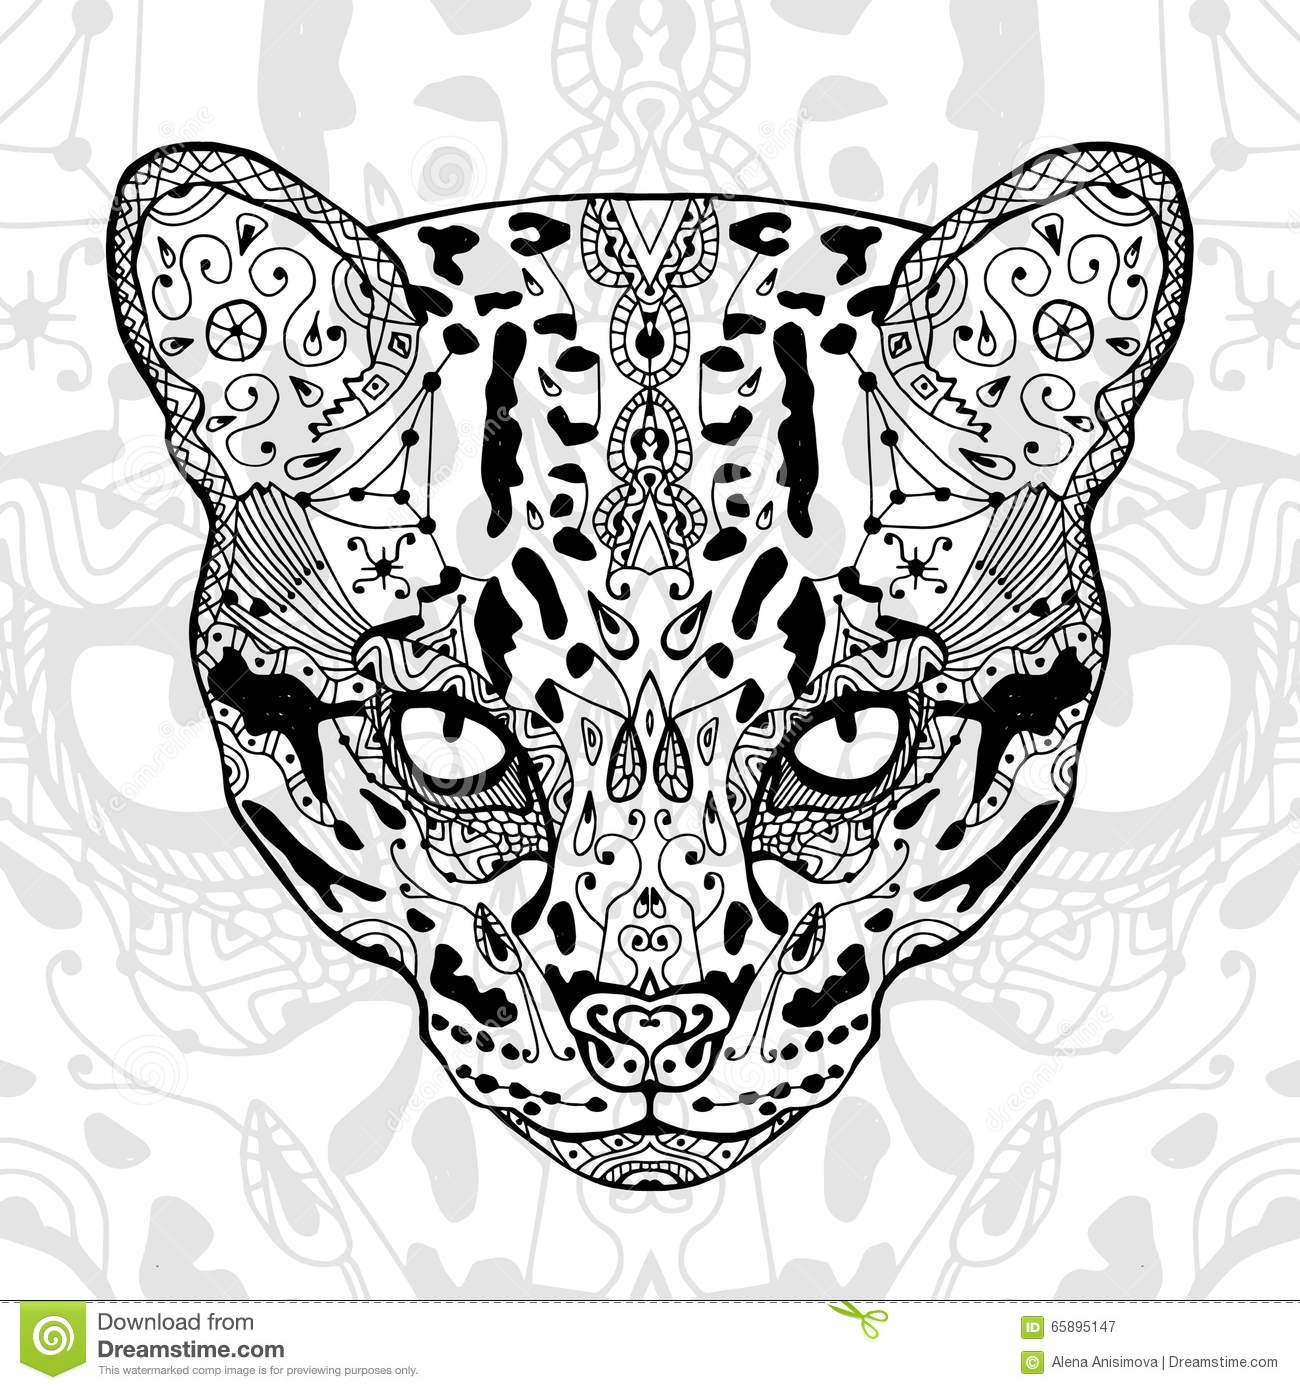 Zen cat coloring page - The Black And Wild Cat White Print With Ethnic Zentangle Patterns Coloring Book For Adults